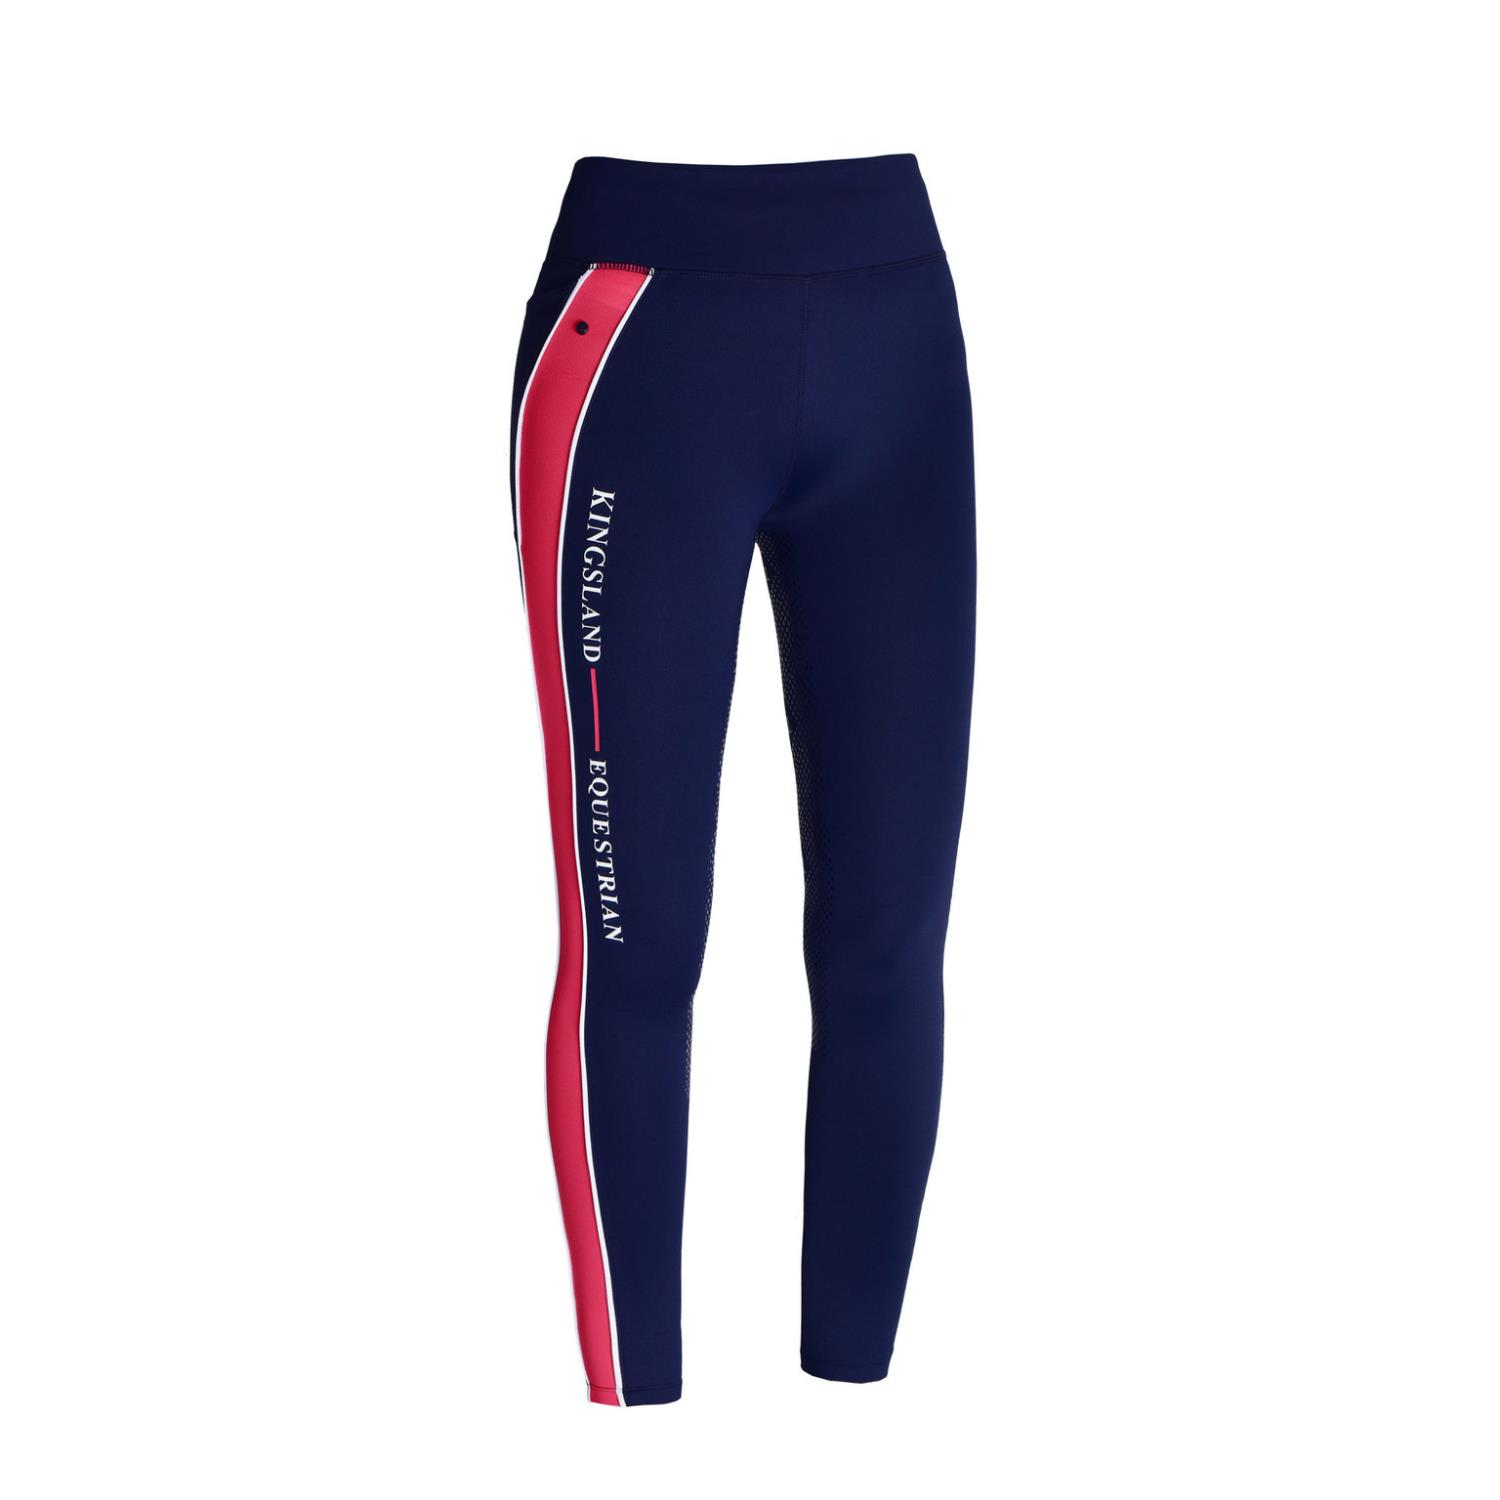 KL Kandy Jente Comp. Tights